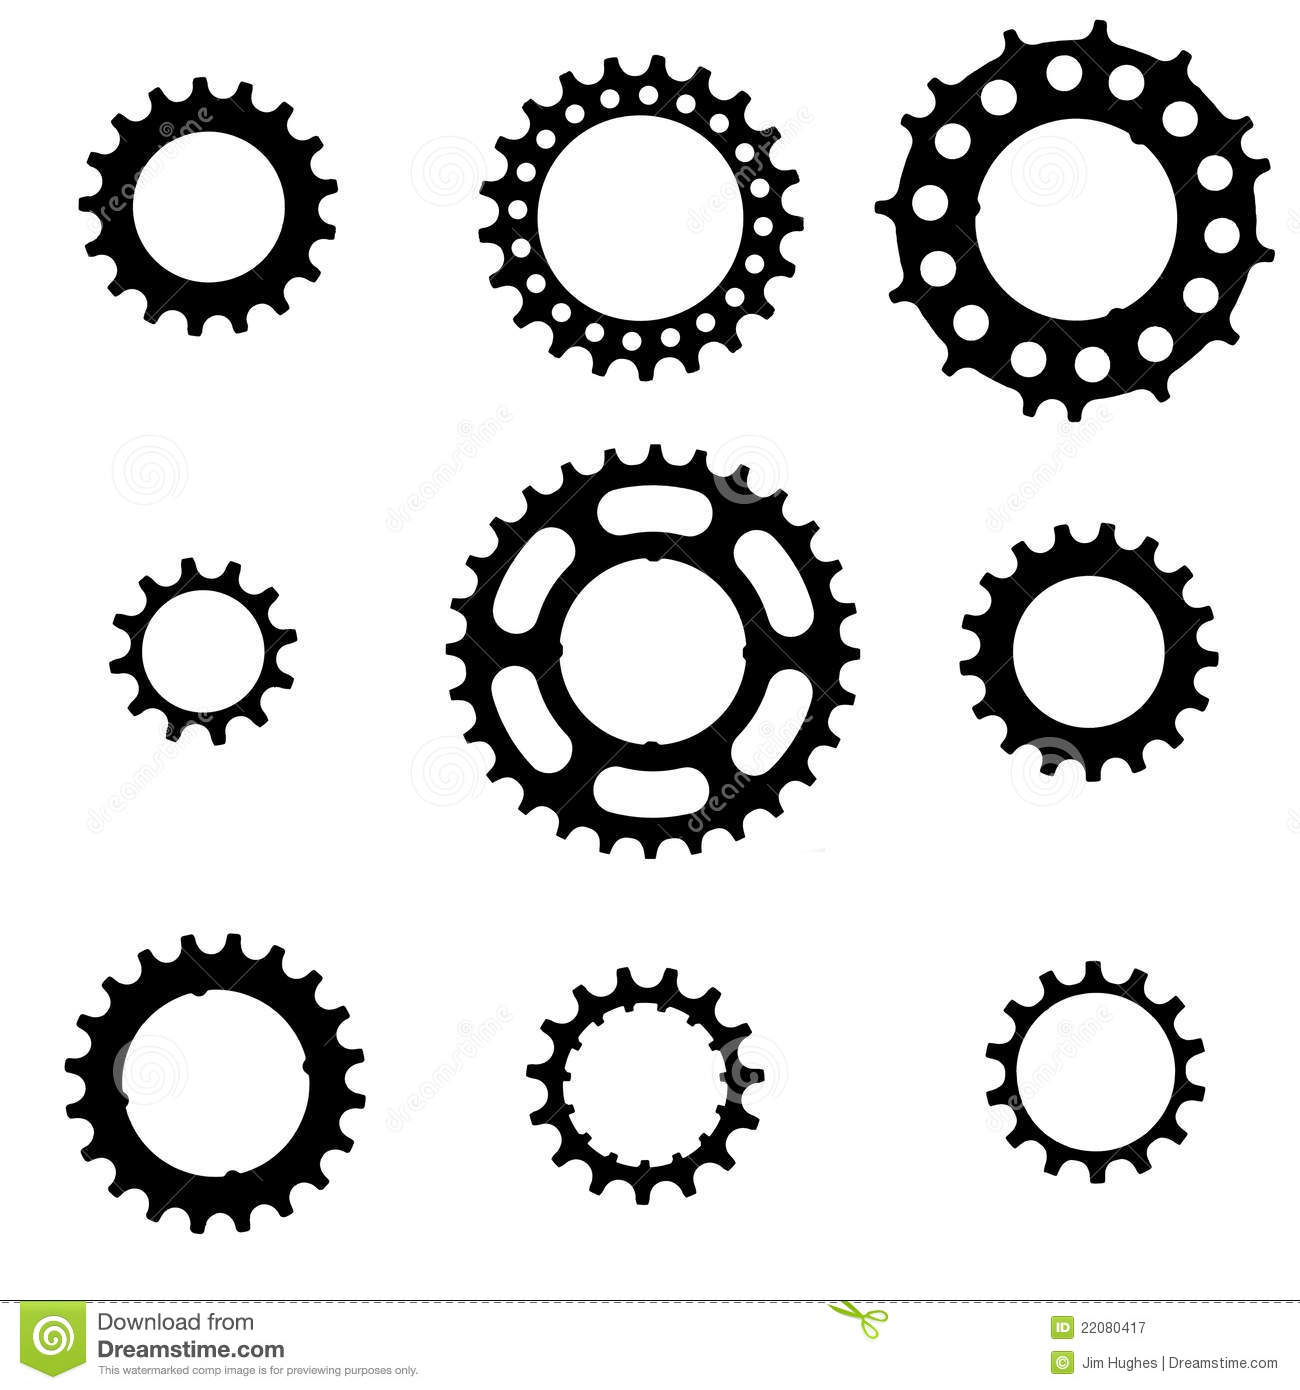 Bicycle clipart chainring Chainring Bike clipart chainring clipart